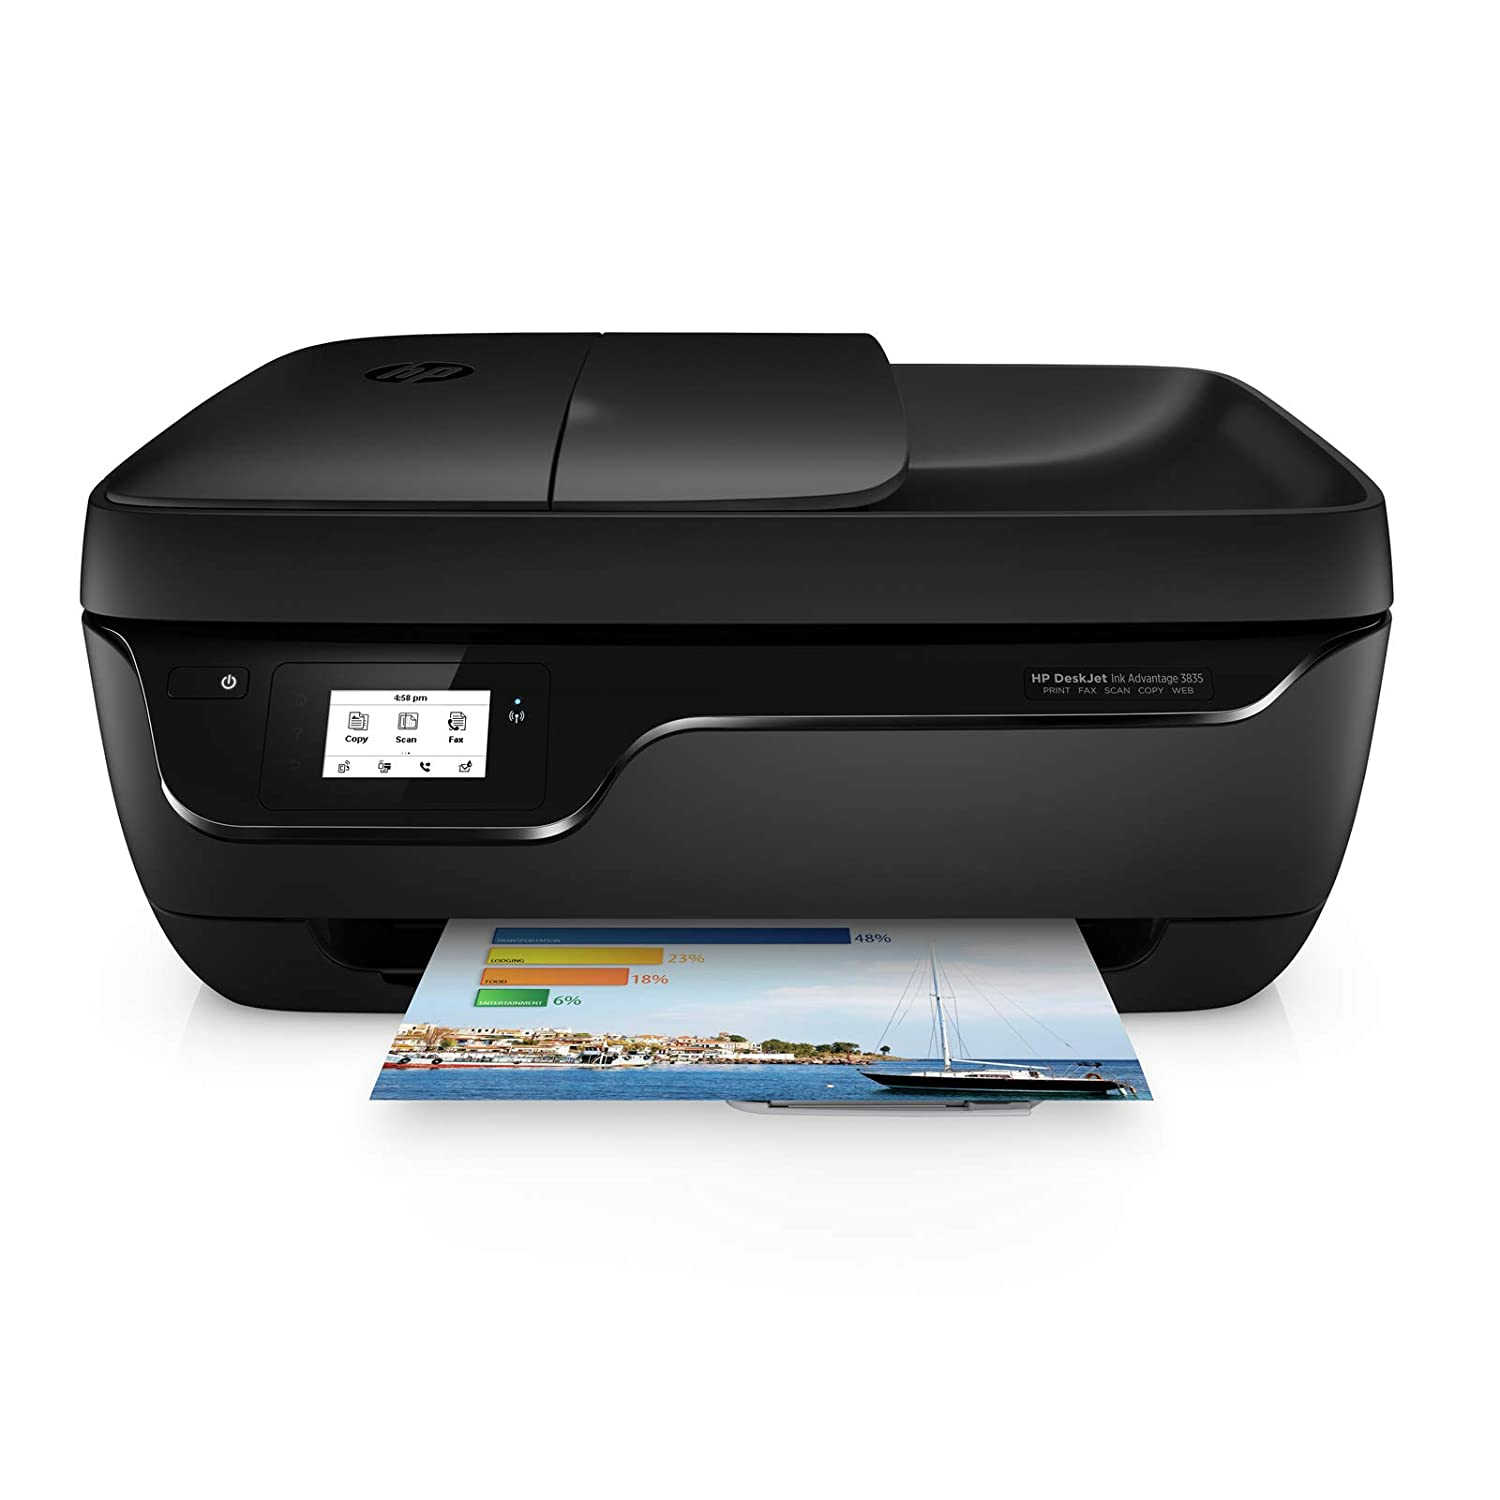 Hp Deskjet 3835 All In One Ink Advantage Wireless Colour Printer Should It Be Of Interest An Electronic Copy This Manual Is Black Computers Accessories